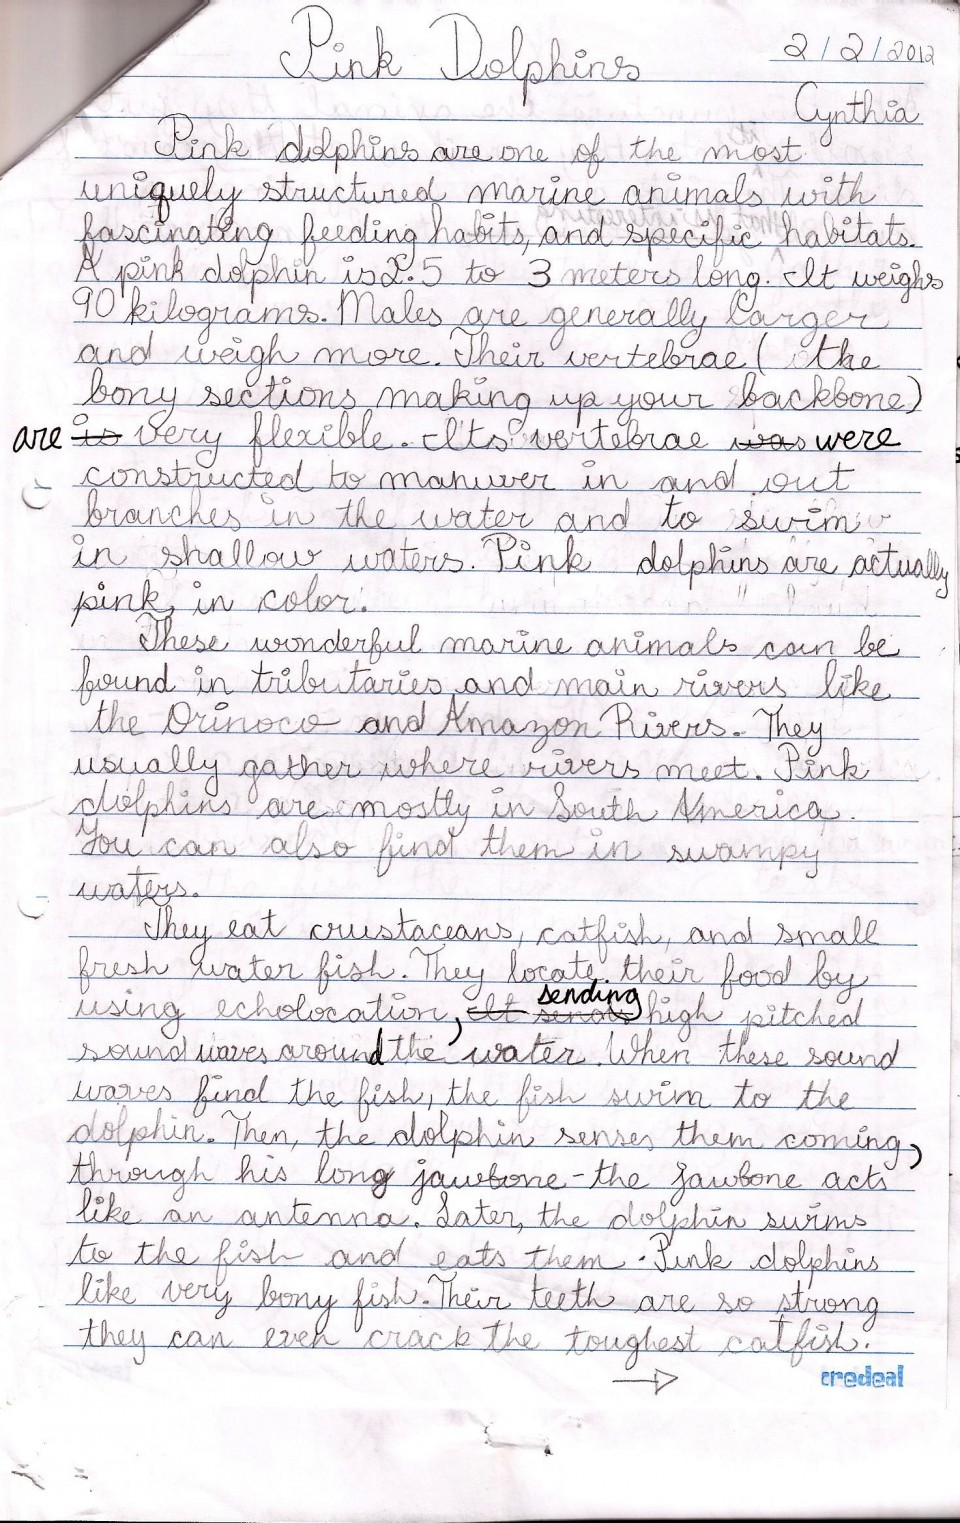 011 Essay Example Pink Dolphins Handwritten Draft Topics For Grade Marvelous 5 Writing Students Persuasive 5th English Question Paper Cbse 960